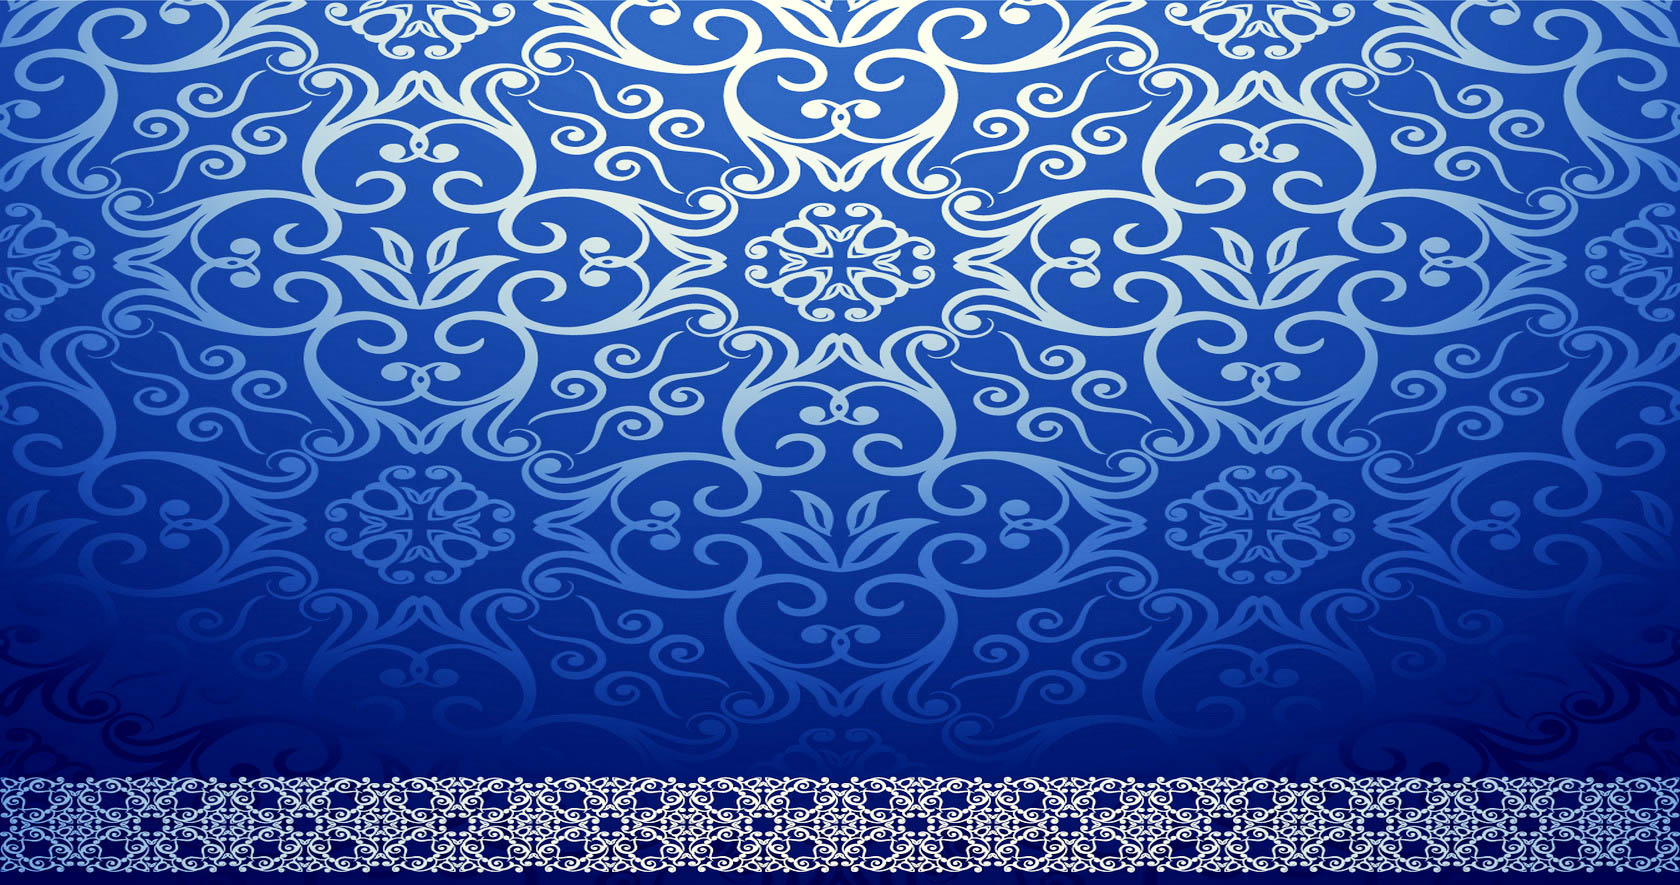 af56319c1dea Ornamental Wallpapers, Images And HD Wallpapers In High Definition ...